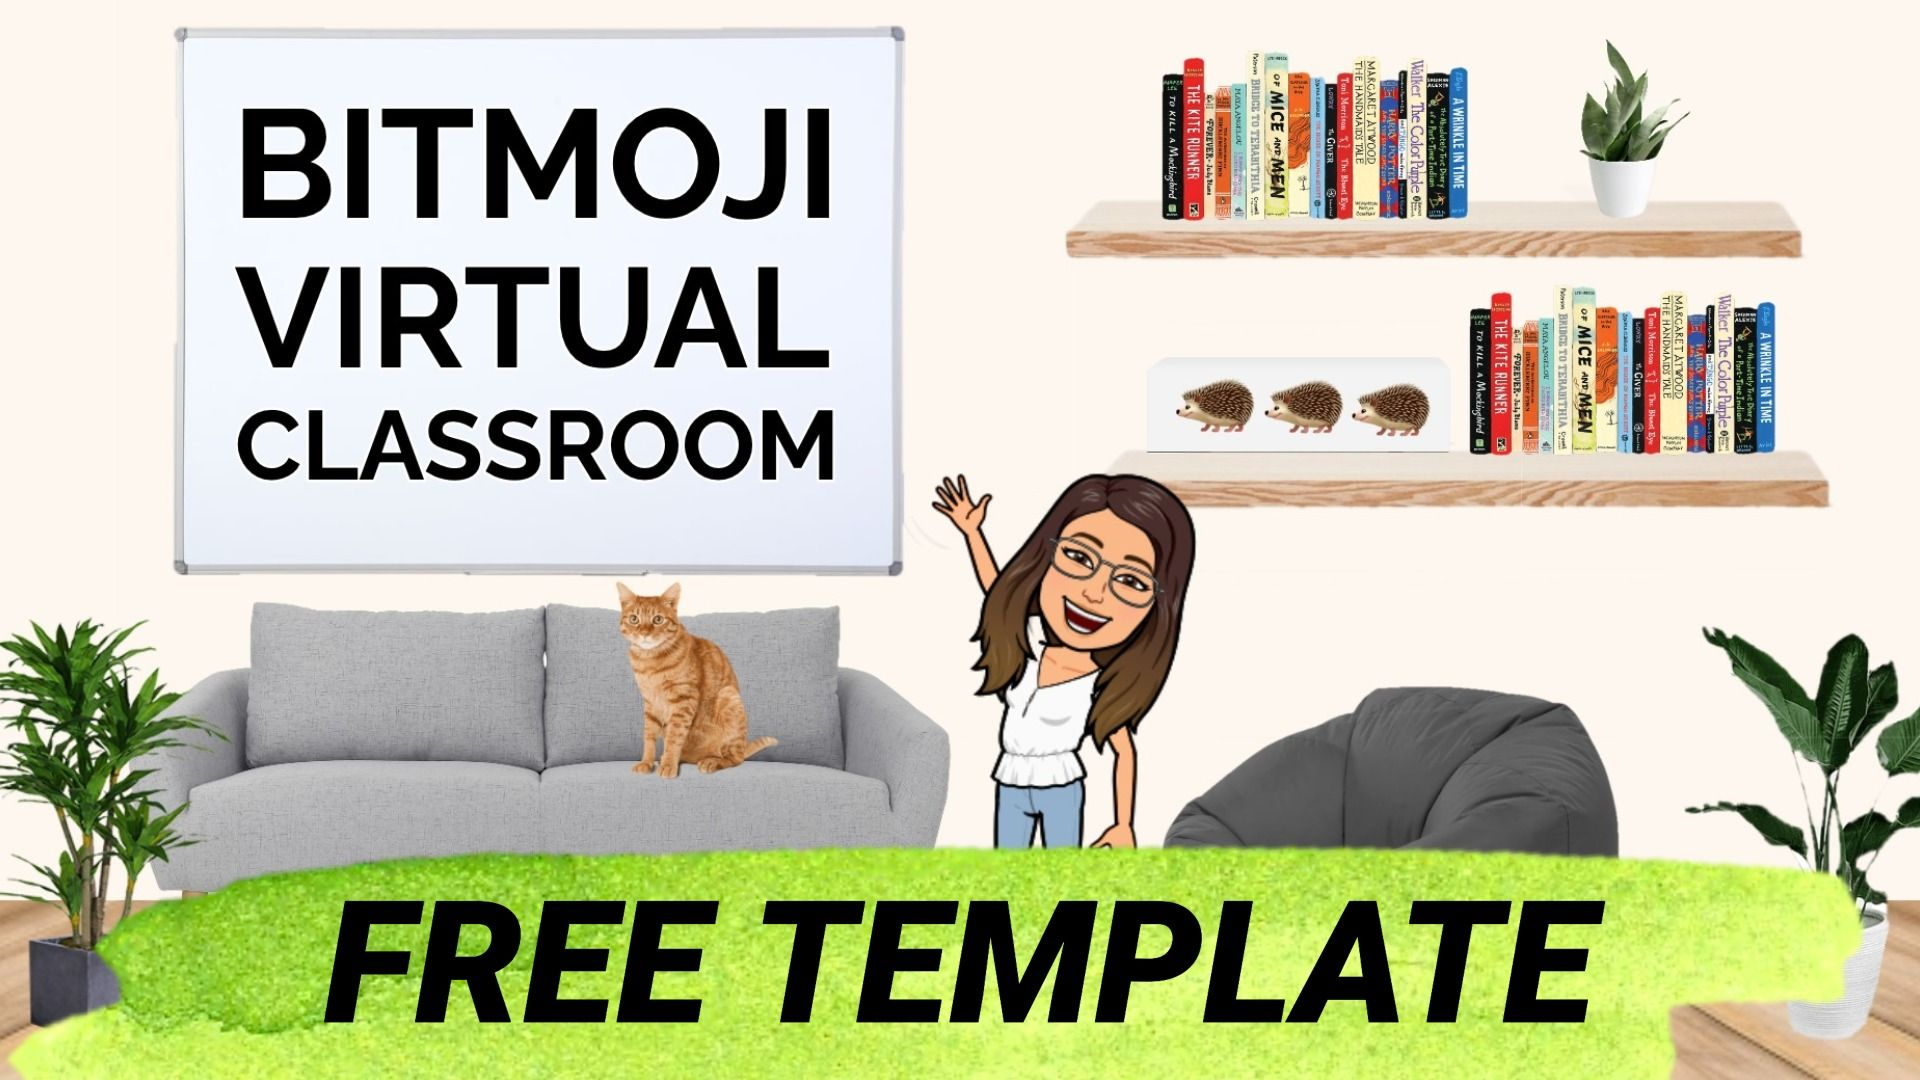 This Bitmoji Classroom Template Helps You Create Your Own Virtual Classroom